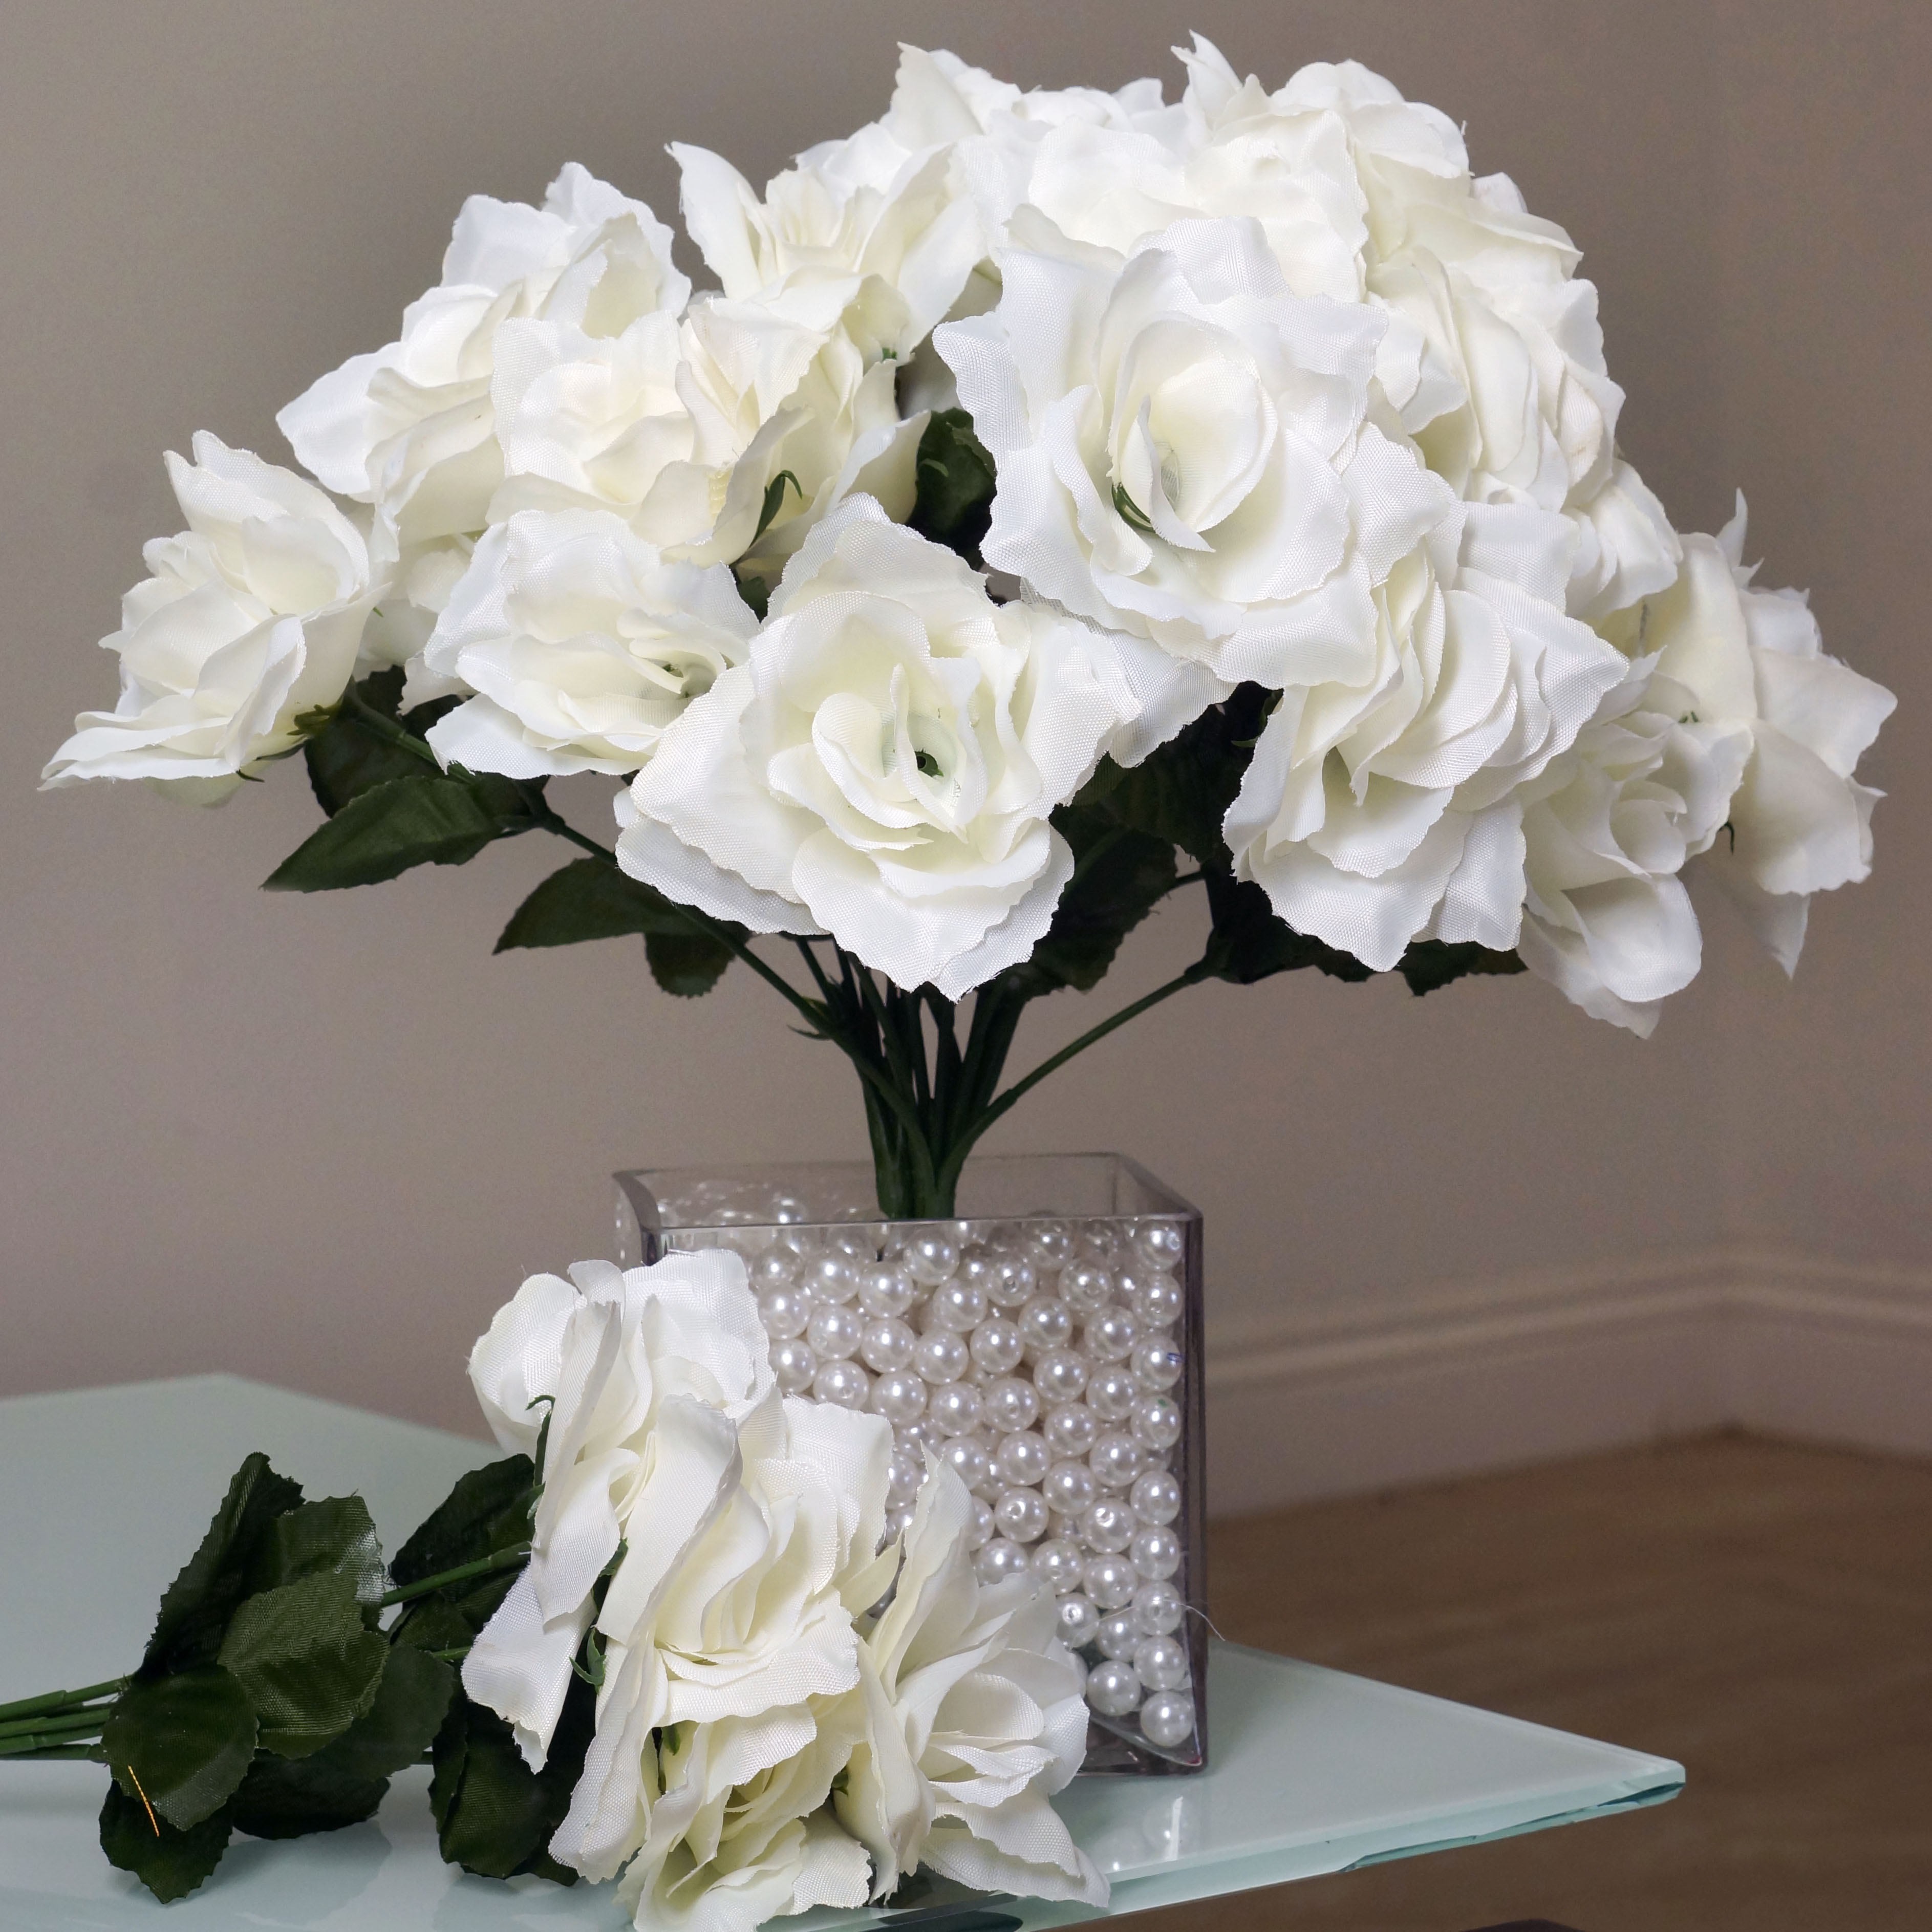 Wedding Centerpieces Wholesale: 252 SILK OPEN ROSES Wedding WHOLESALE Discounted Flowers